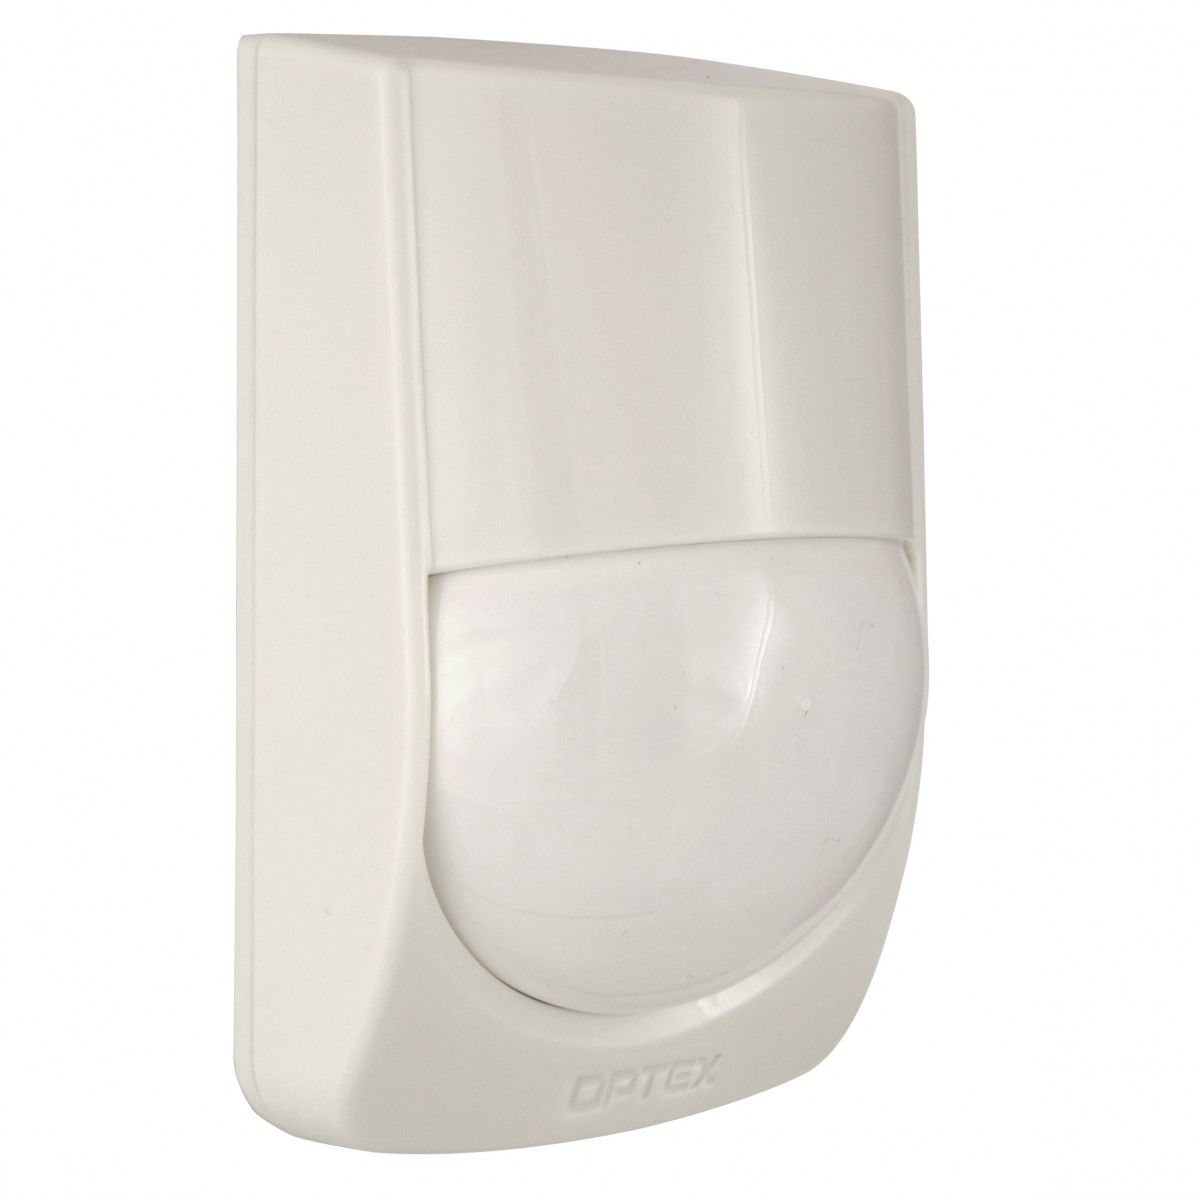 Optex® S3650A RXC-ST Passive Infrared (PIR) Sensor Motion Detector Each